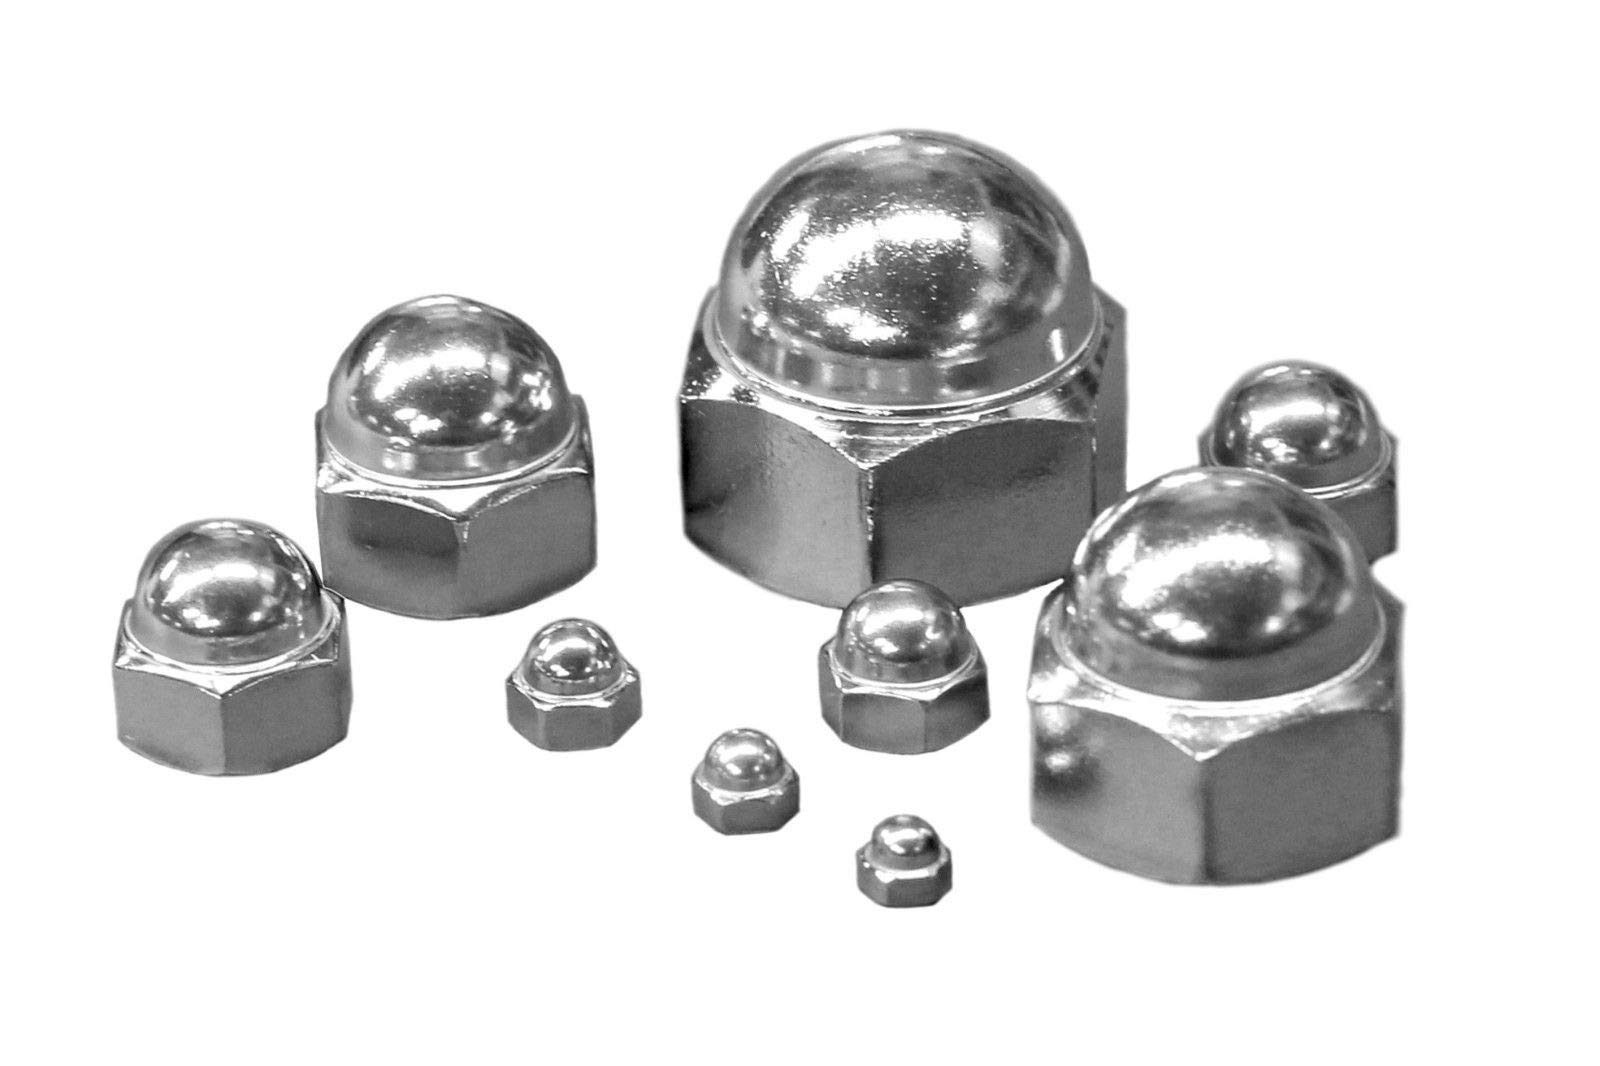 Bolt Base 2mm A2 Stainless Steel Nylon Insert Nyloc Nylock Lock Nuts M2 X 0.4mm Pitch 10